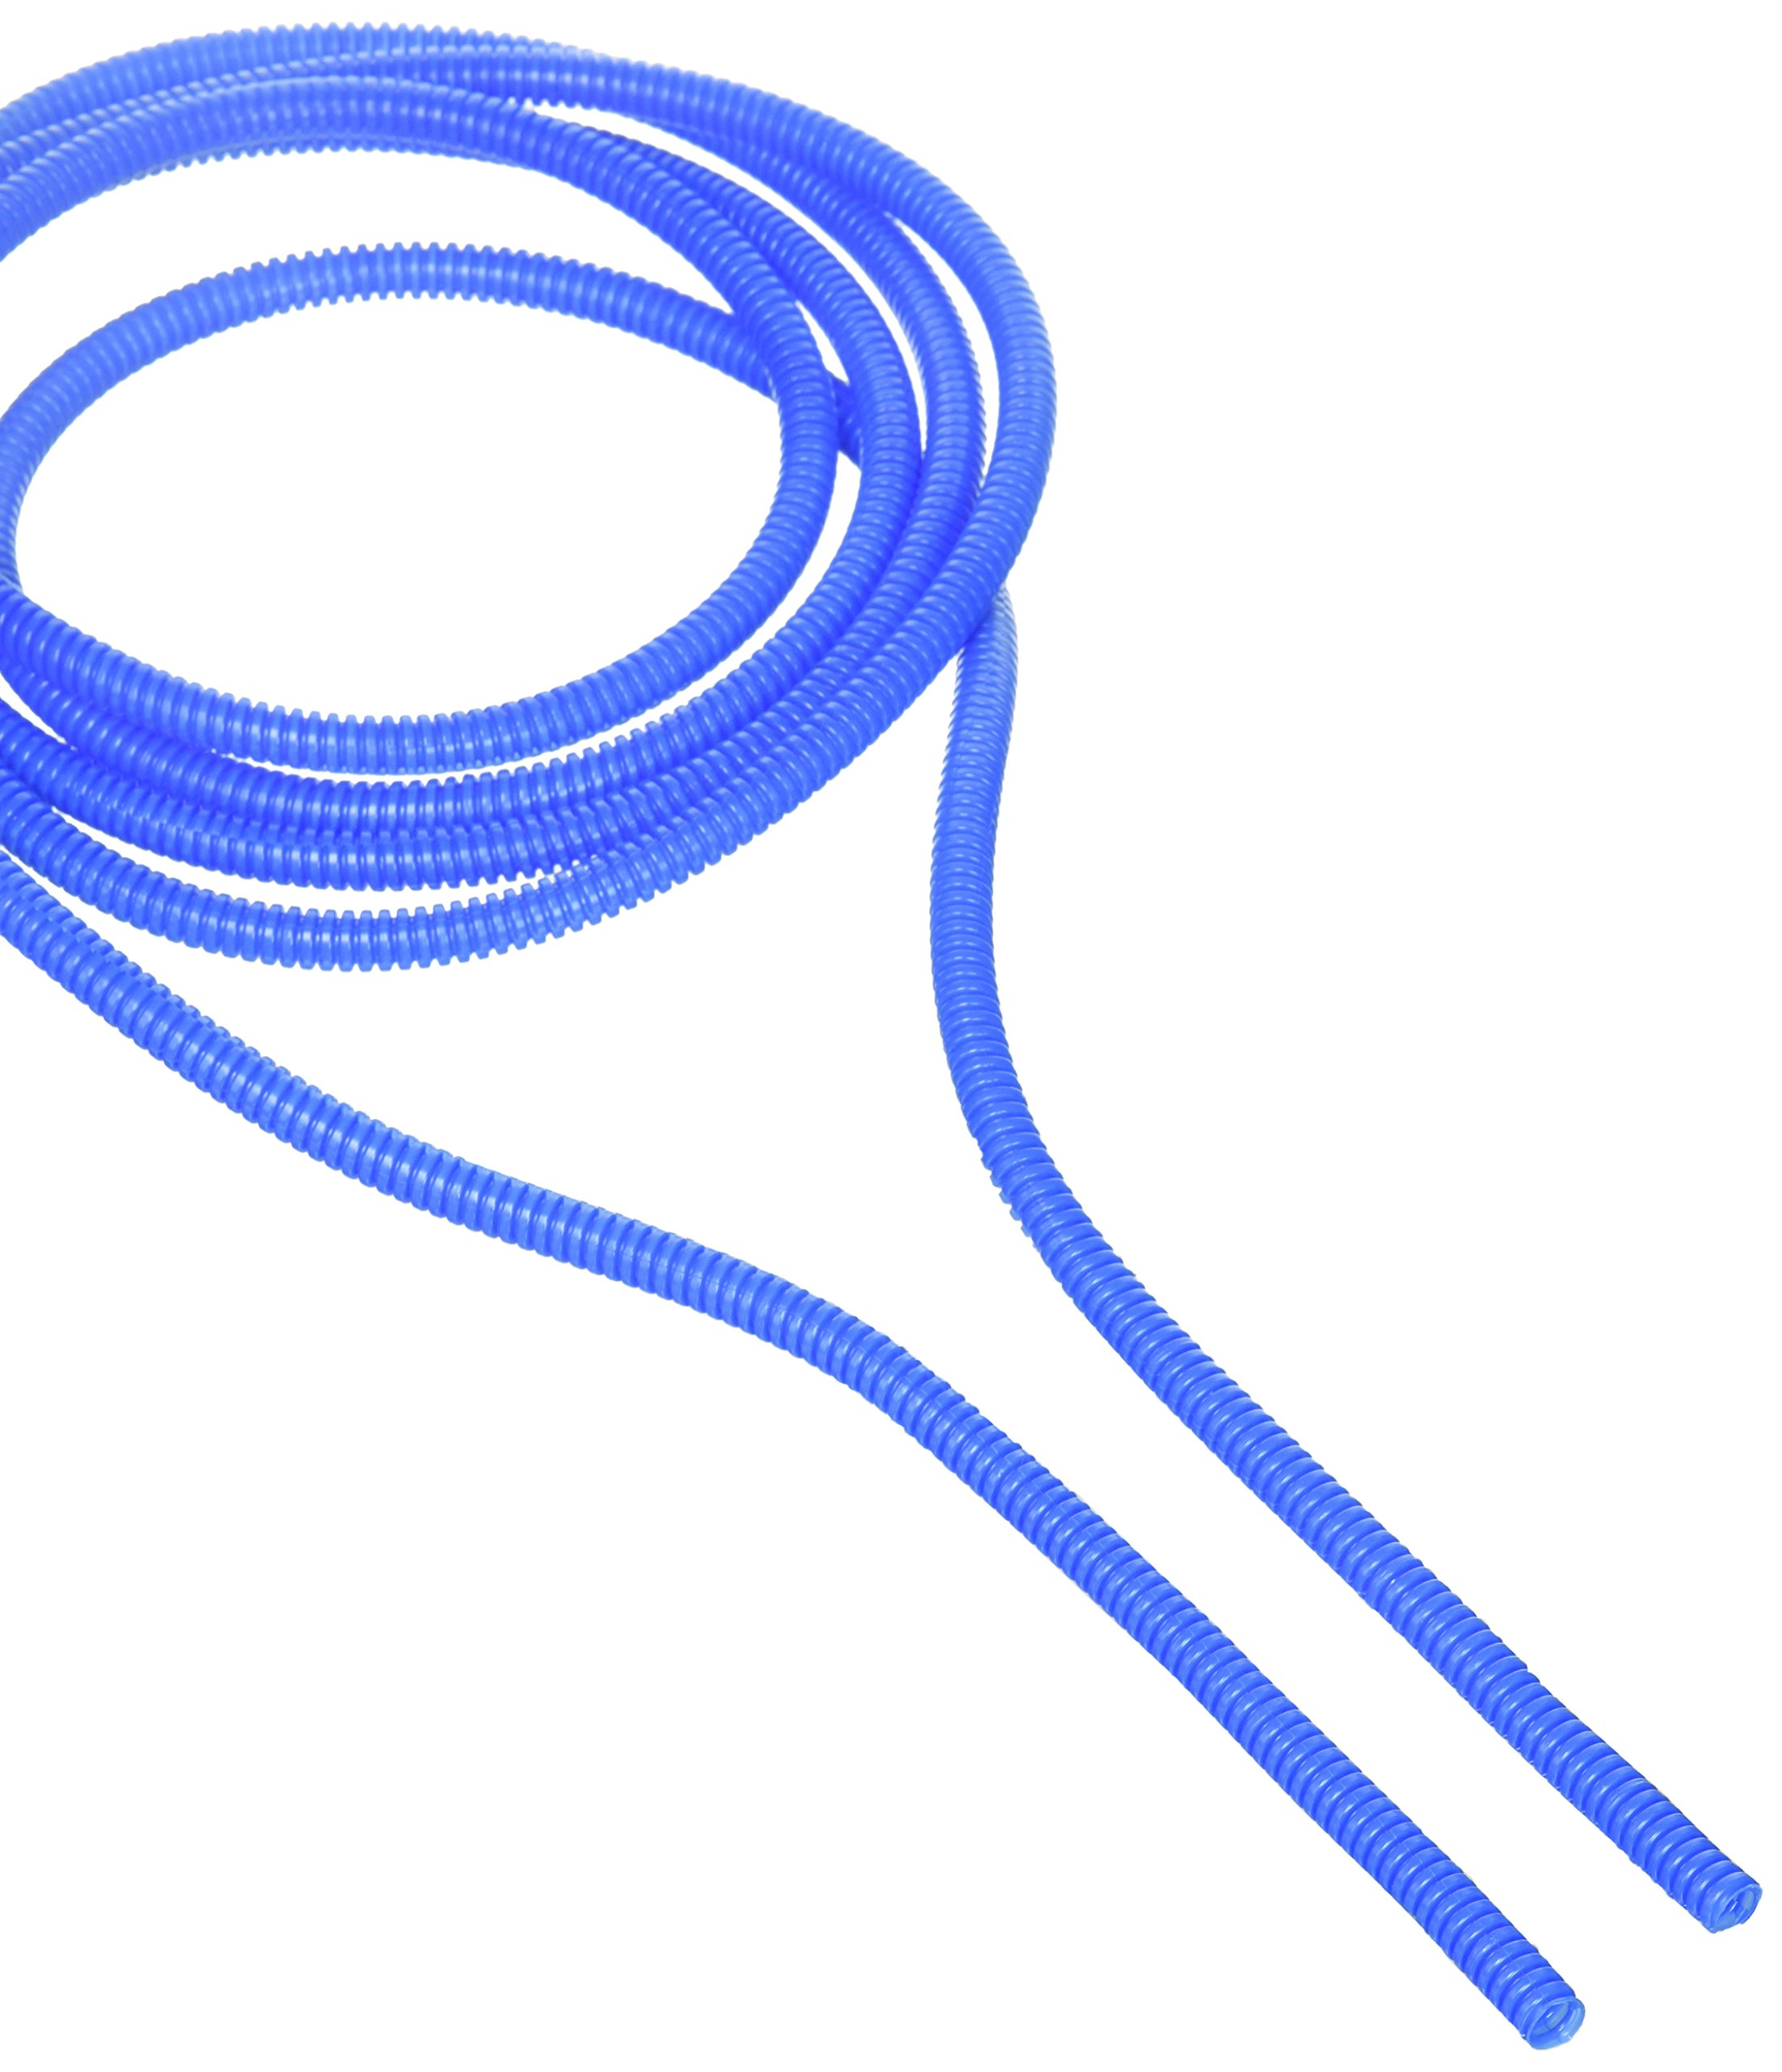 Taylor Cable 38260 Blue Convoluted Tubing